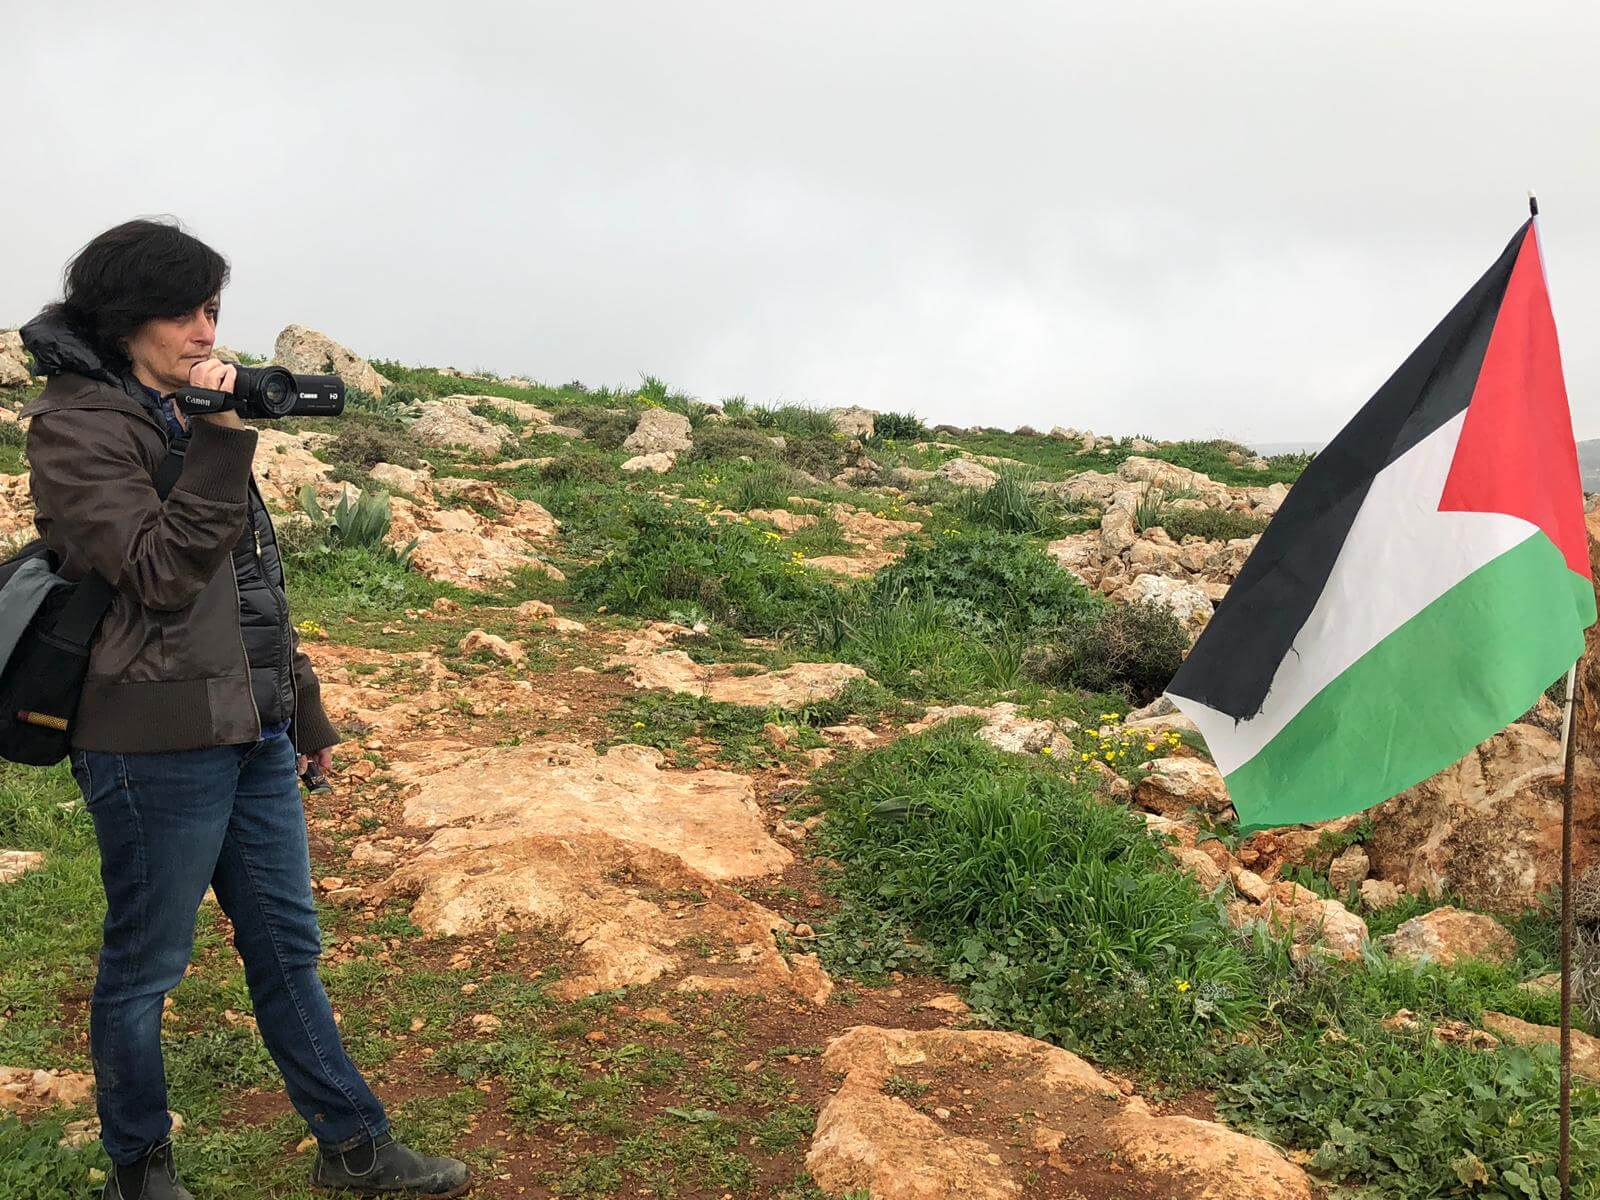 Jen Marlowe filming the site where Hamdi Na'aman had been shot and killed by settlers in Mughayyir.